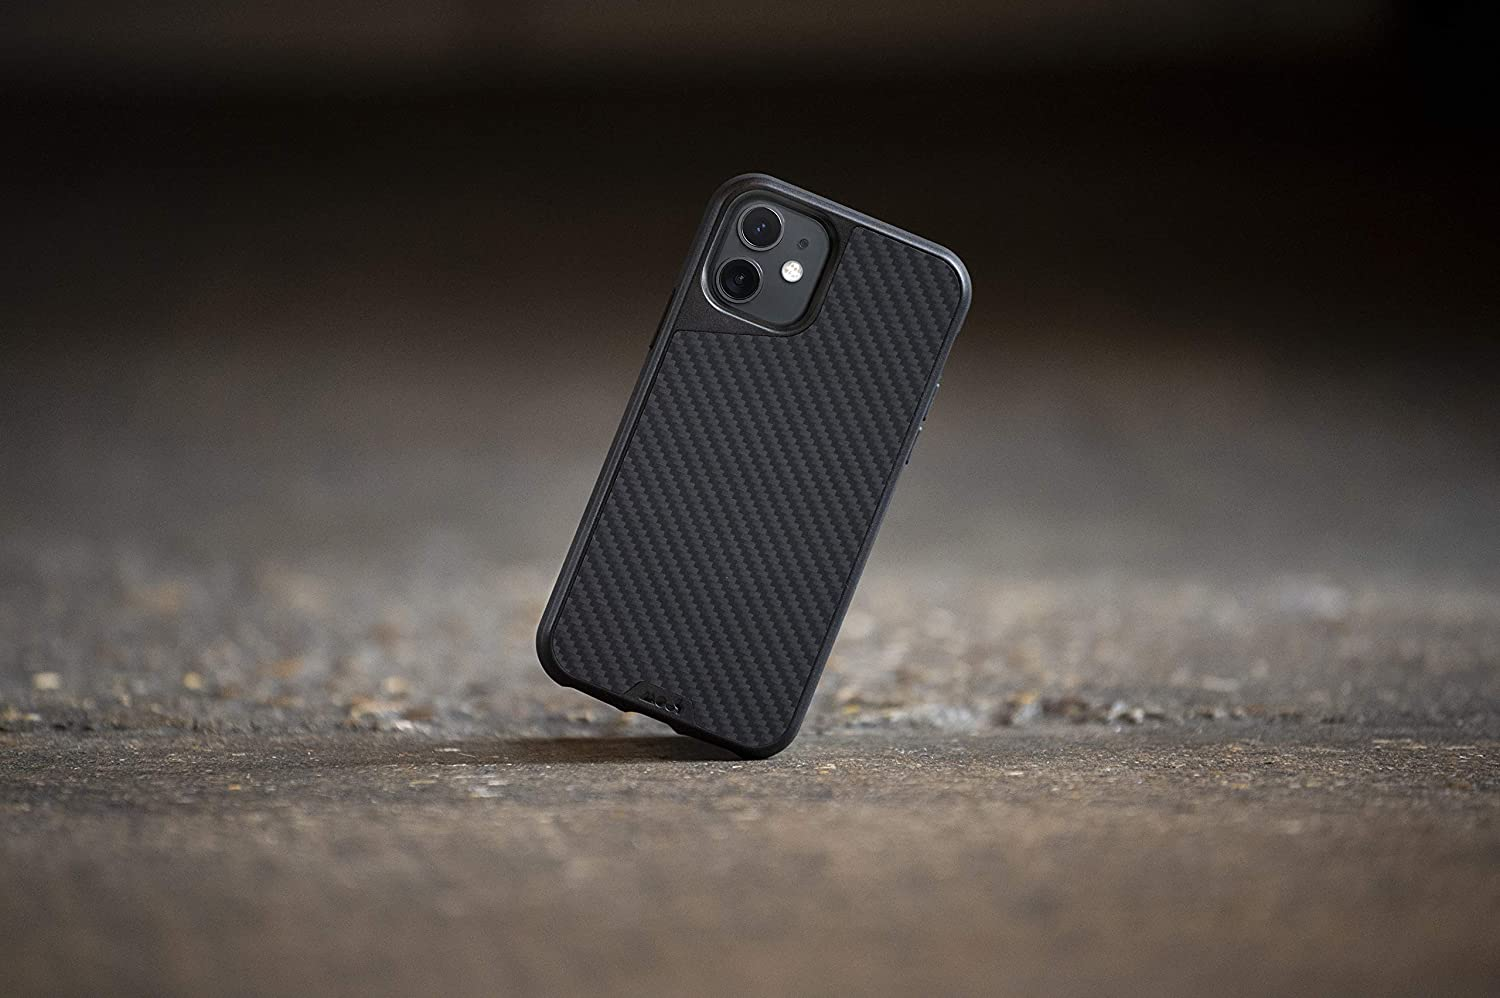 Mous - Protective Case for iPhone 11 - Limitless 3.0 - Aramid Fiber